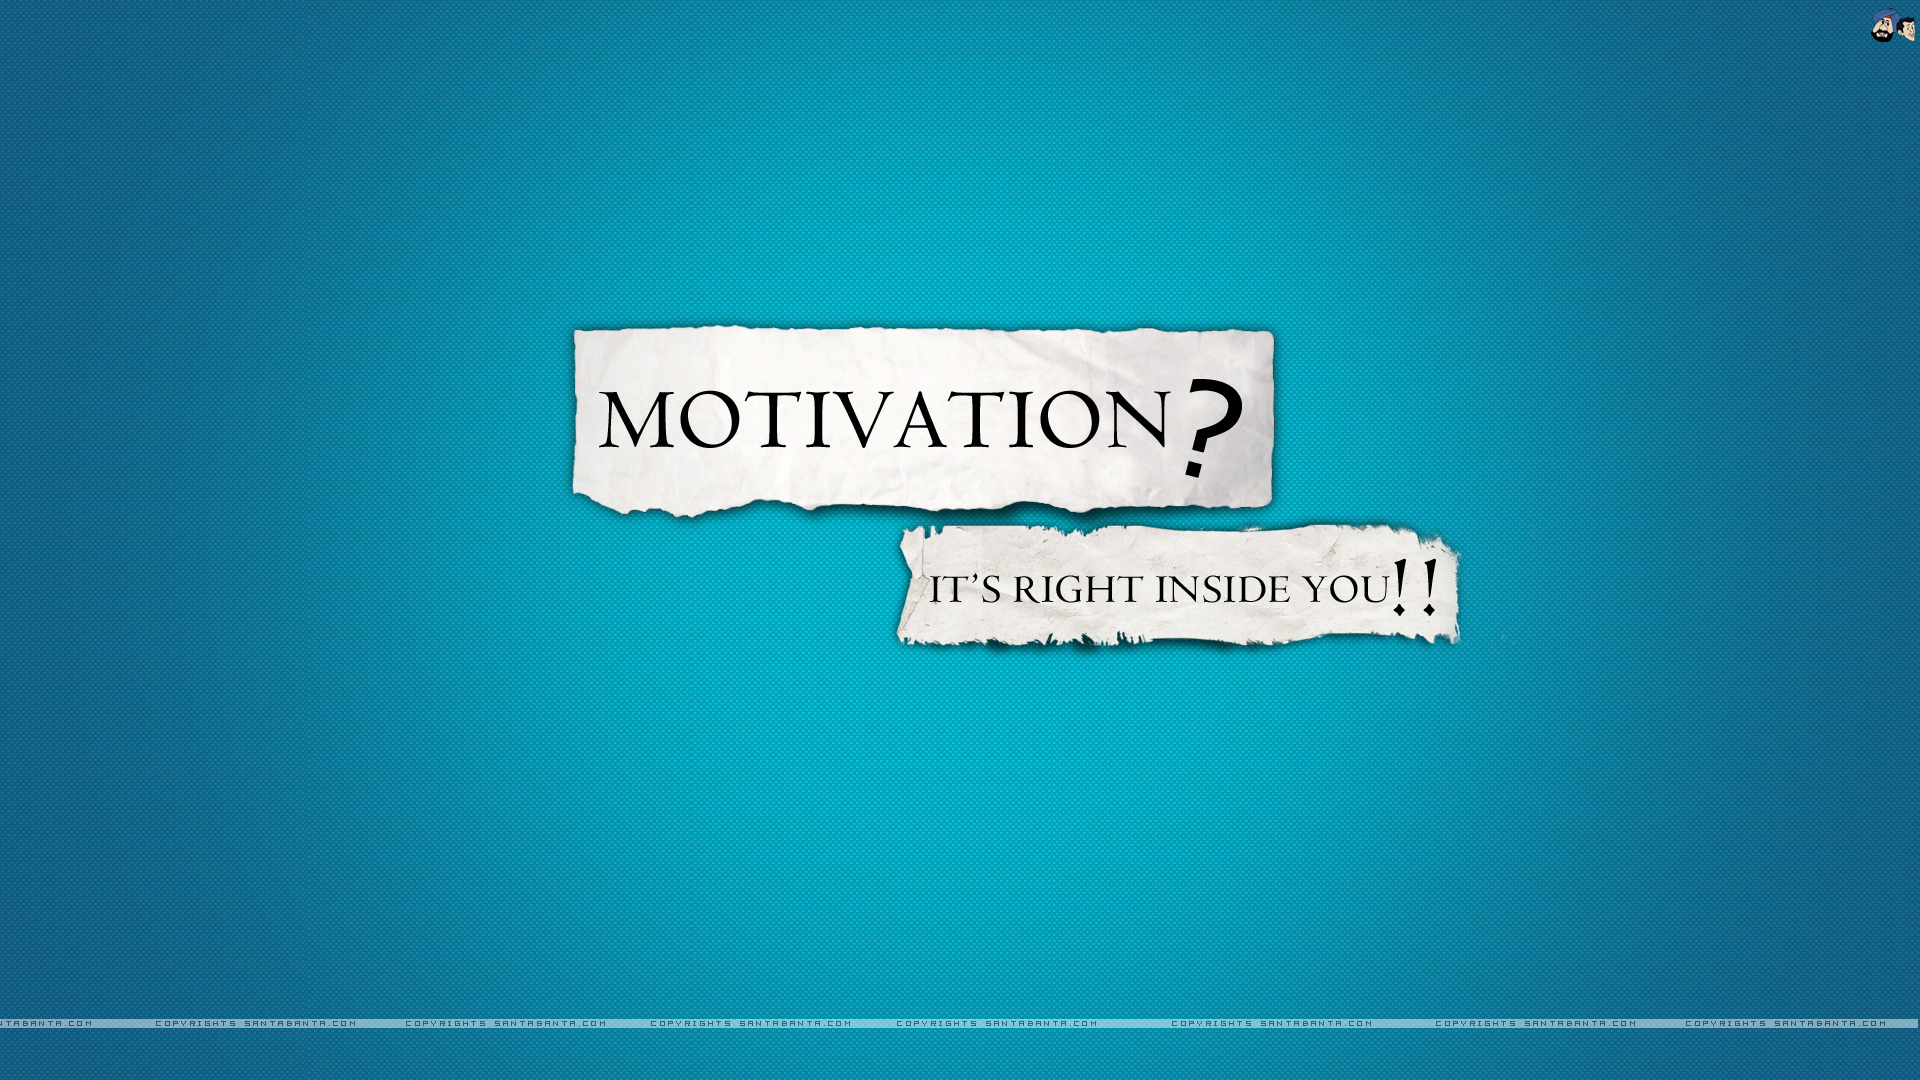 Motivation is inside you by SantaBanta.com